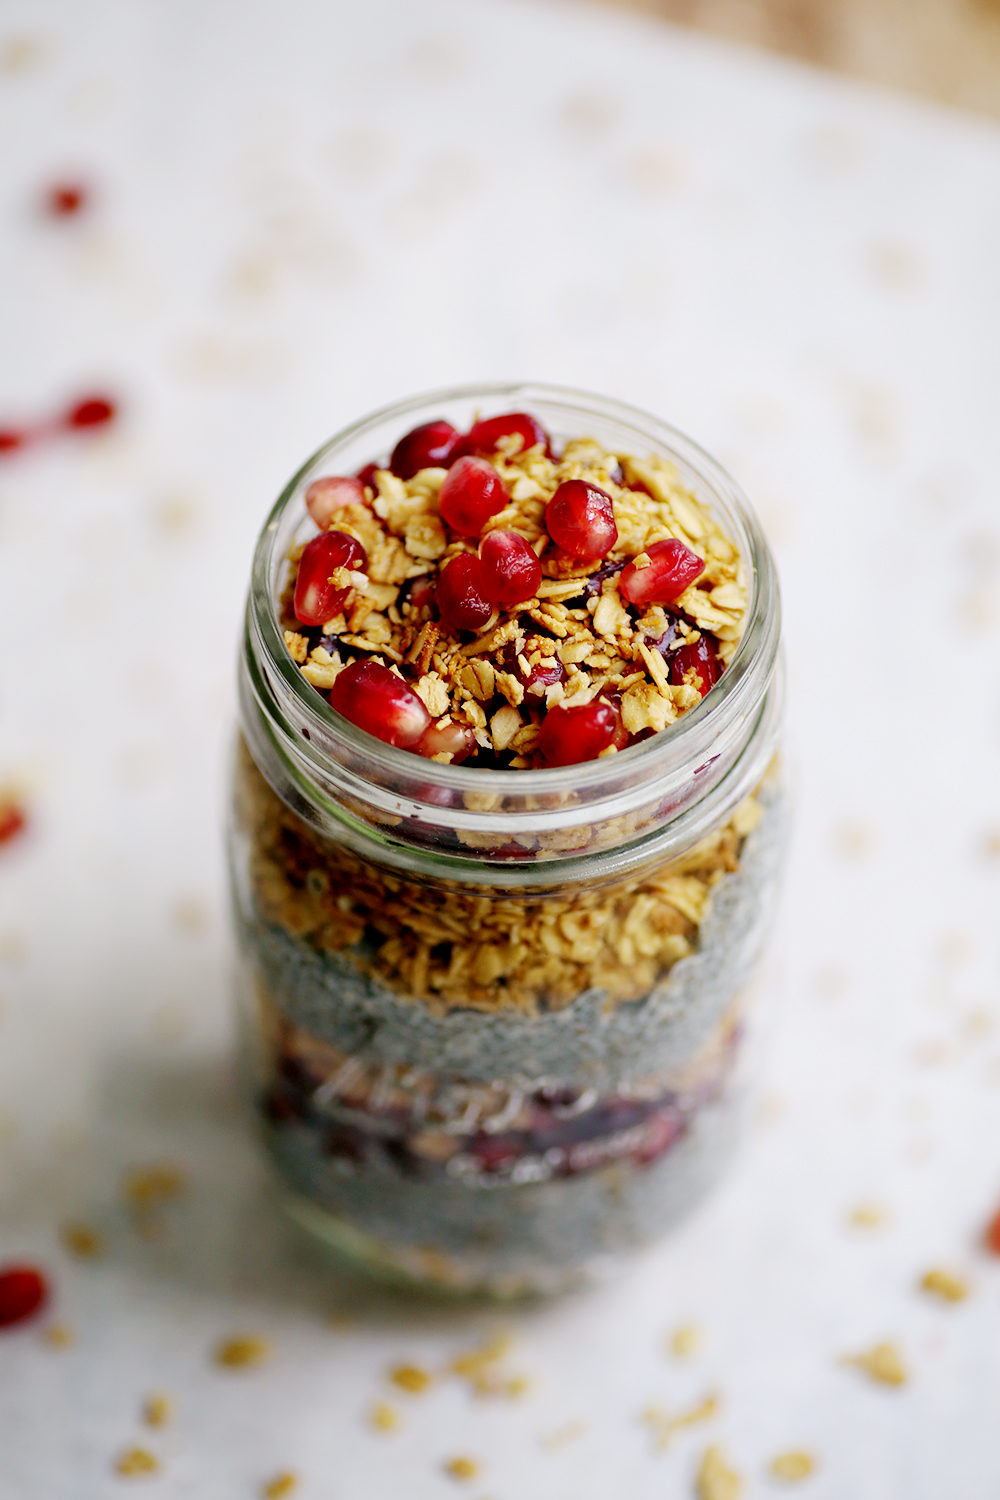 This breakfast in a jar recipe looks so yummy! Been looking for something healthy and easy to make for on the go. Plus I love granola and pomegranate and chia seeds.